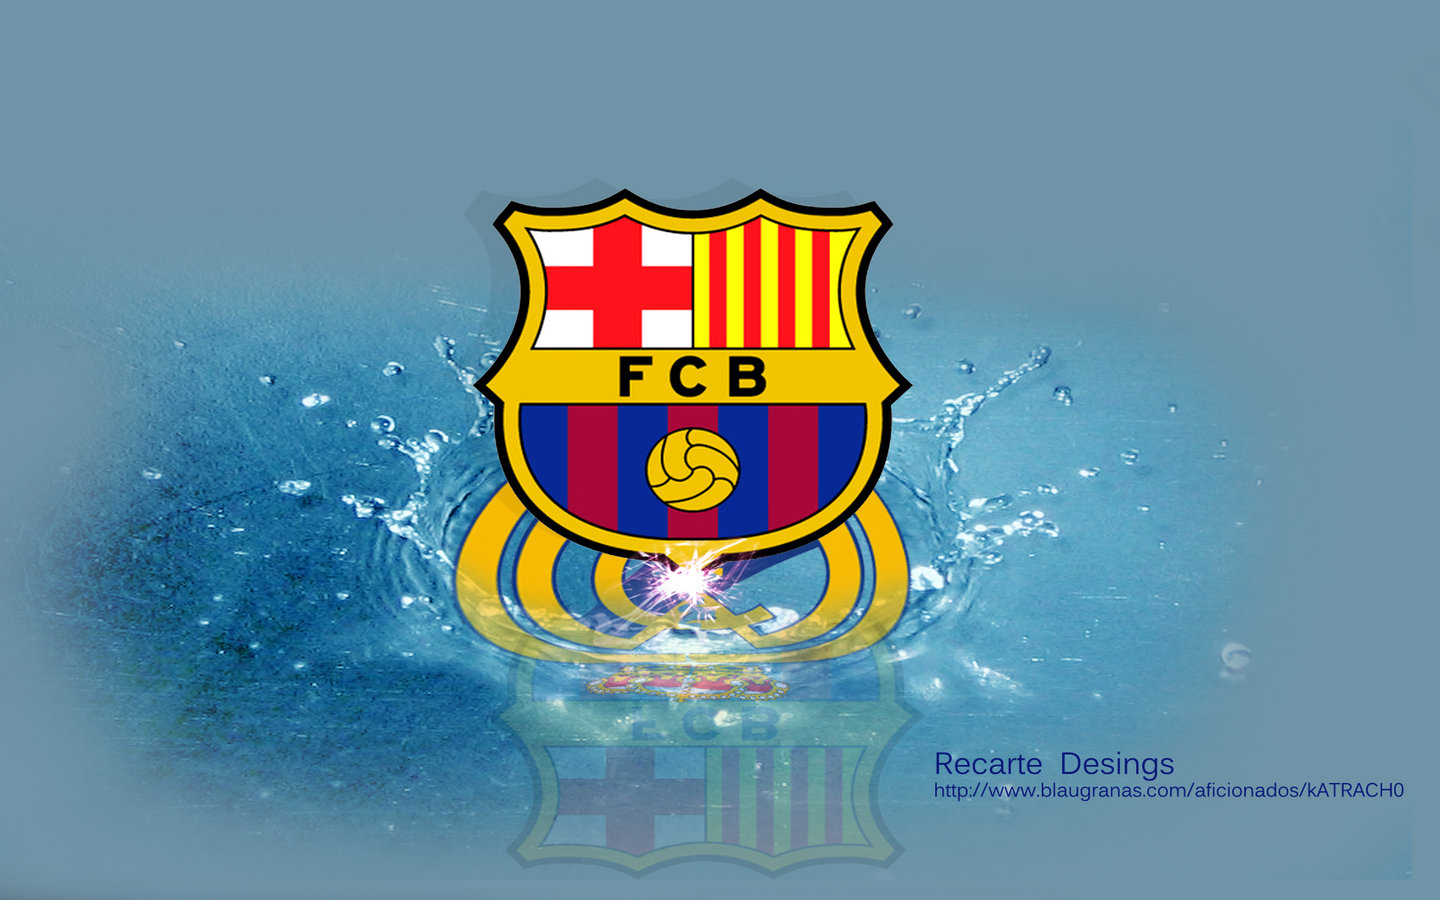 Mikewwigen Stuff Beautiful Fc Barcelona Logo 2012 Wallpaper Hd On 1440x900 Widescreen